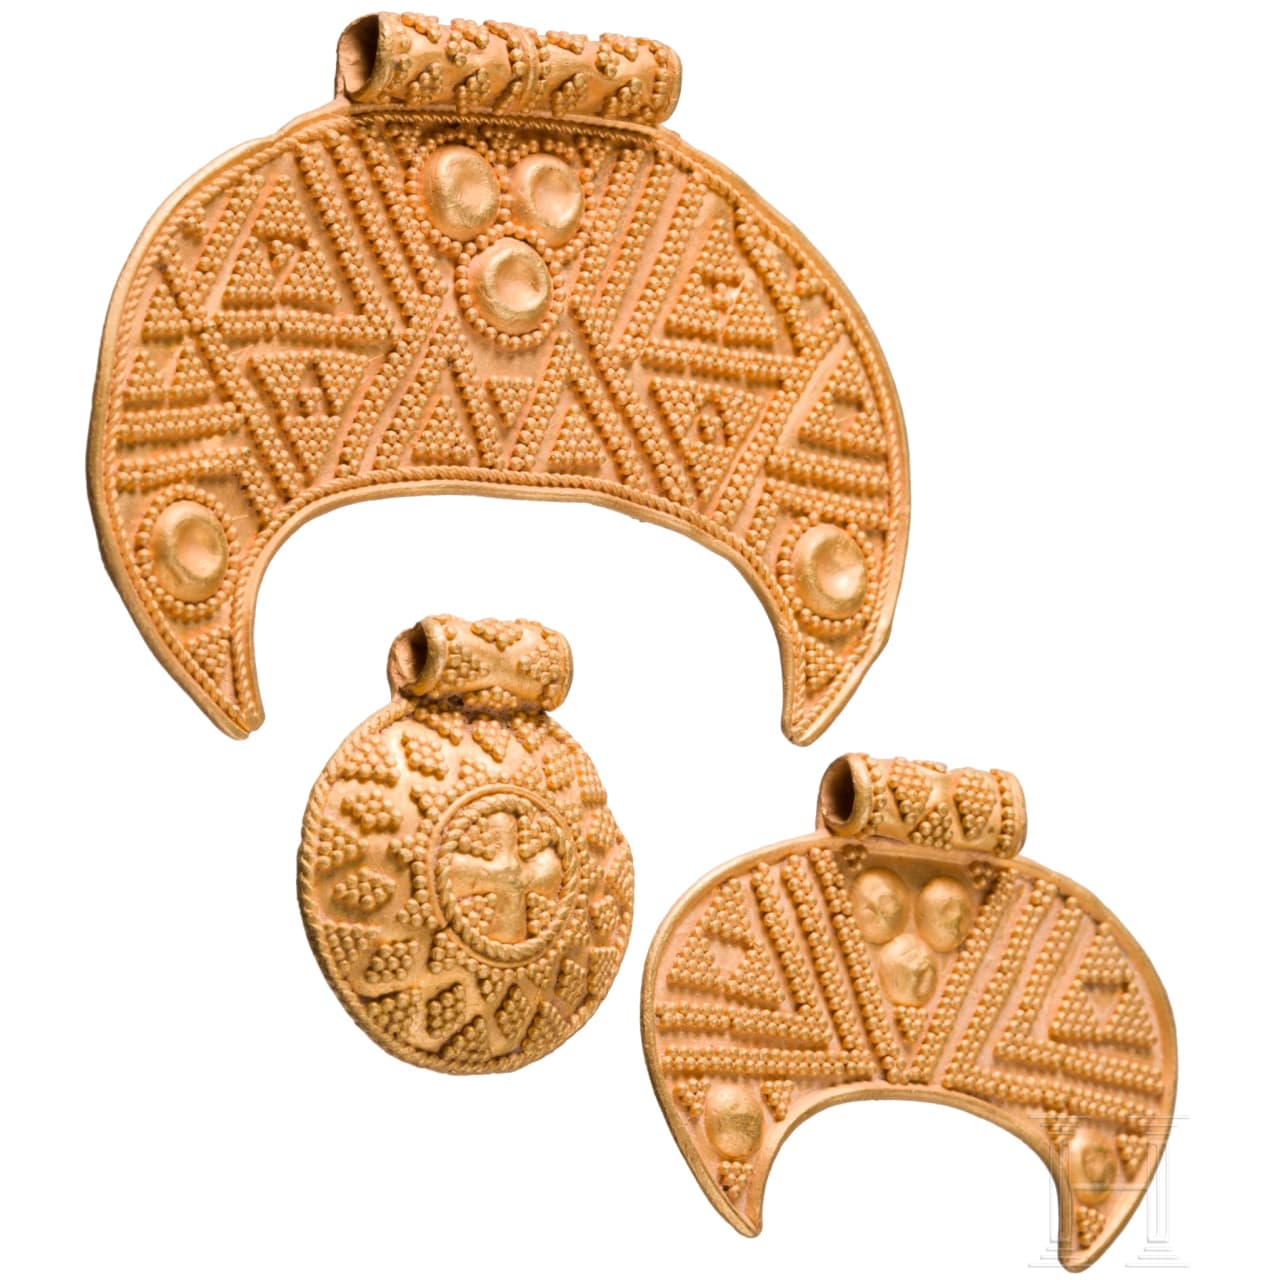 A Scandinavian Viking gold necklace, 10th – 11th century